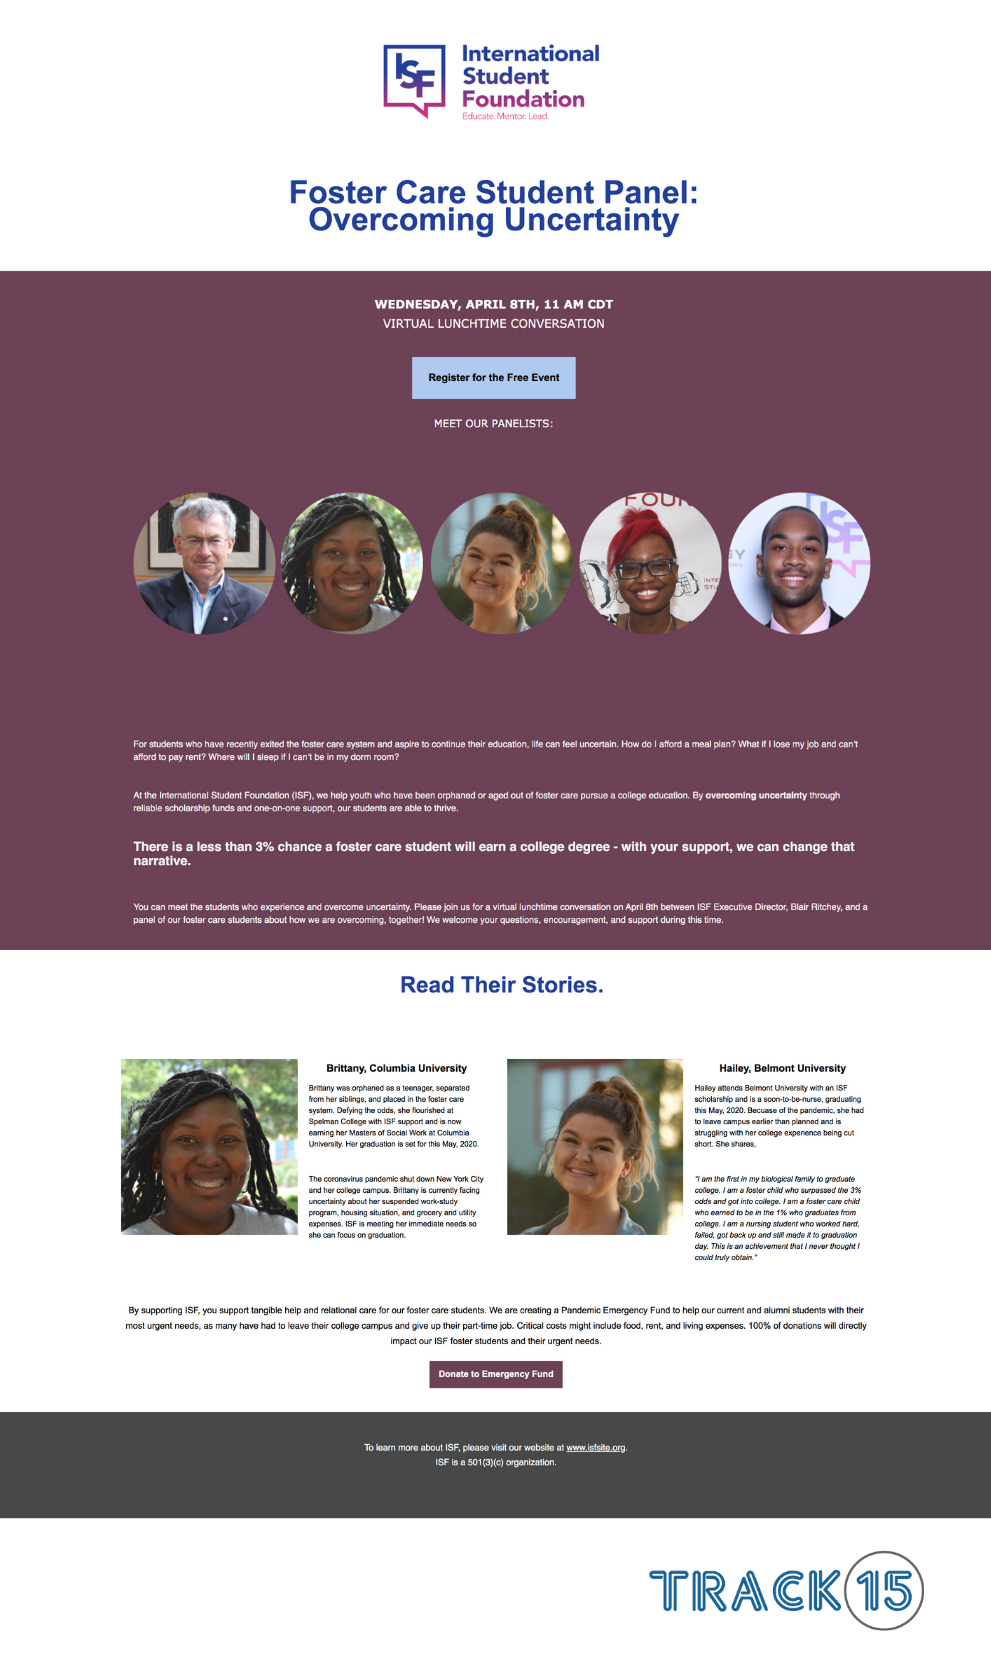 International Student Foundation Landing Page: Student Panel